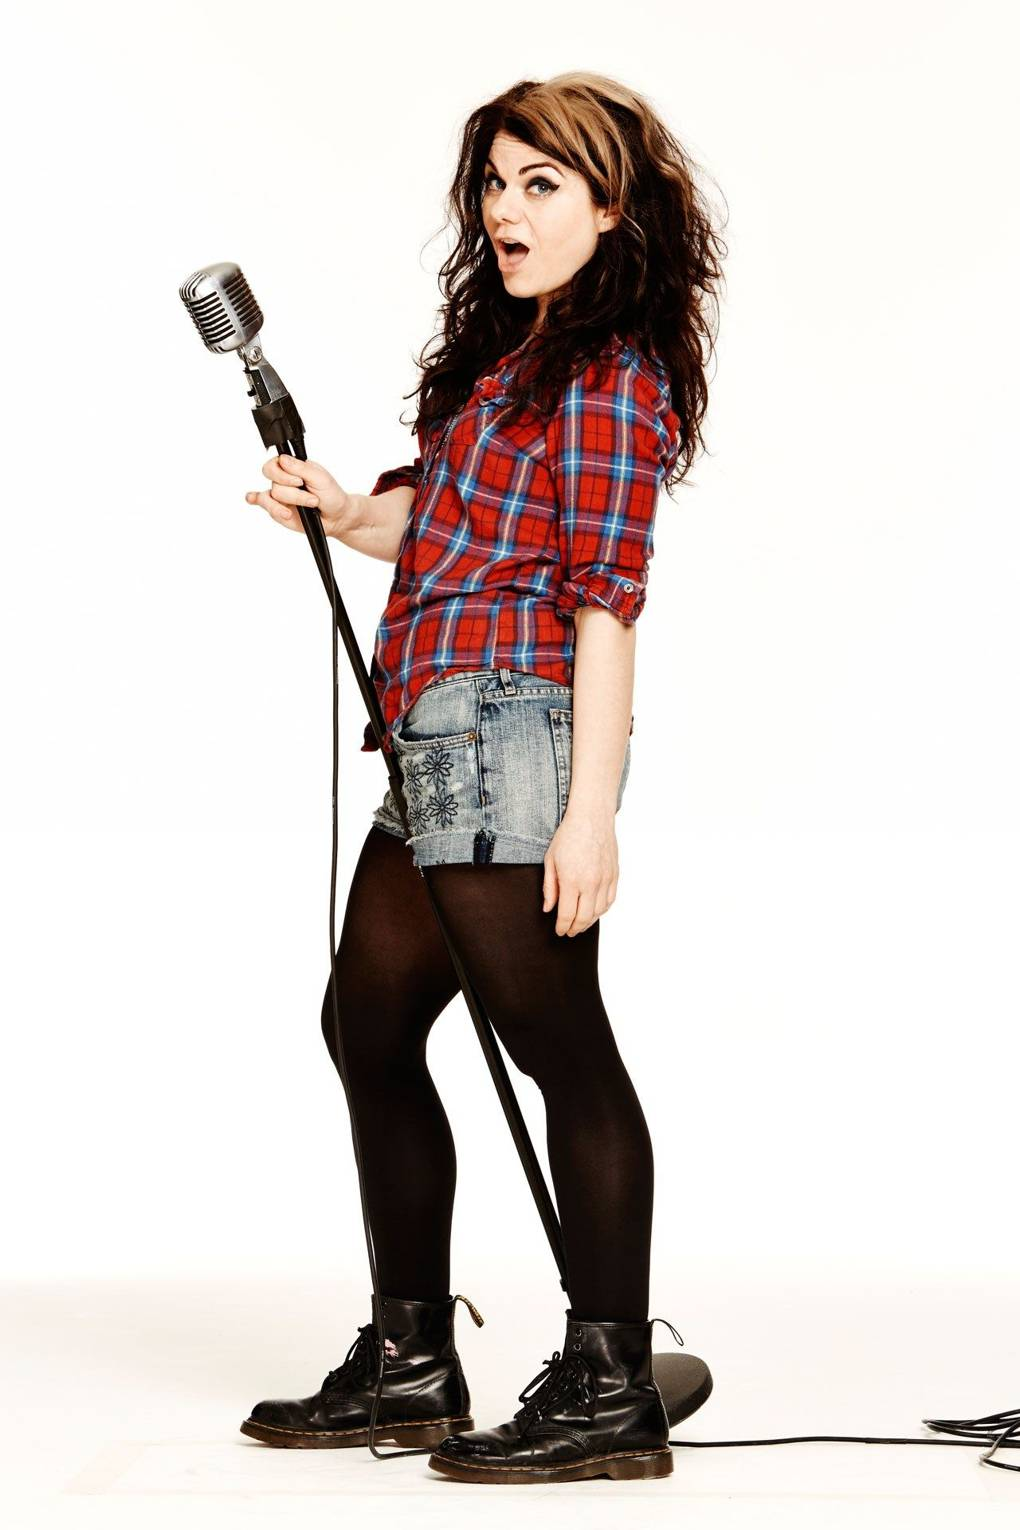 7ad06e7a4fc39 Caitlin Moran on well-endowed men, terrible music reviews and the